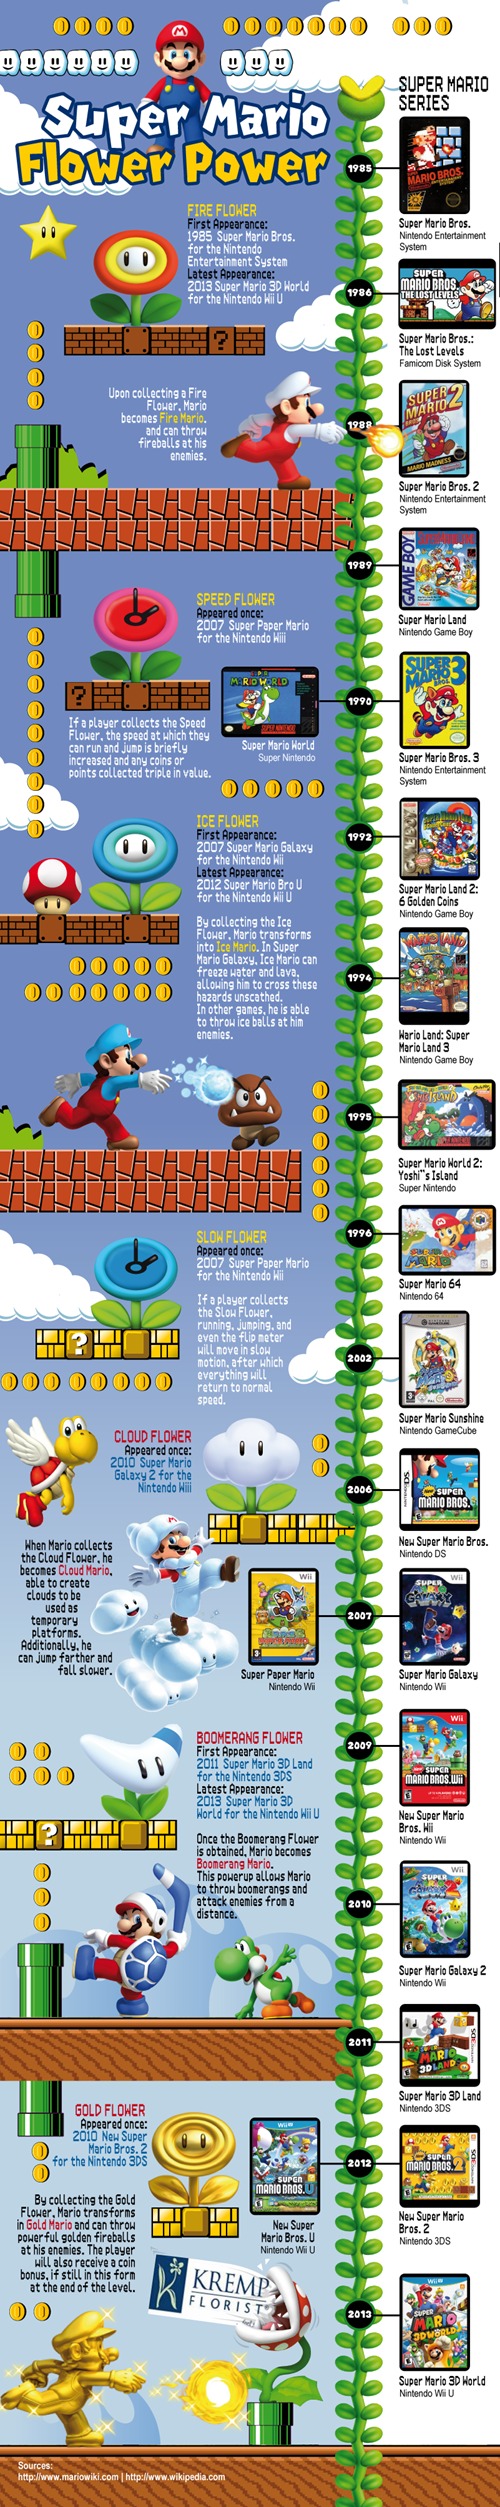 infographics mario fire flower Video Game Coverage - 8129898496